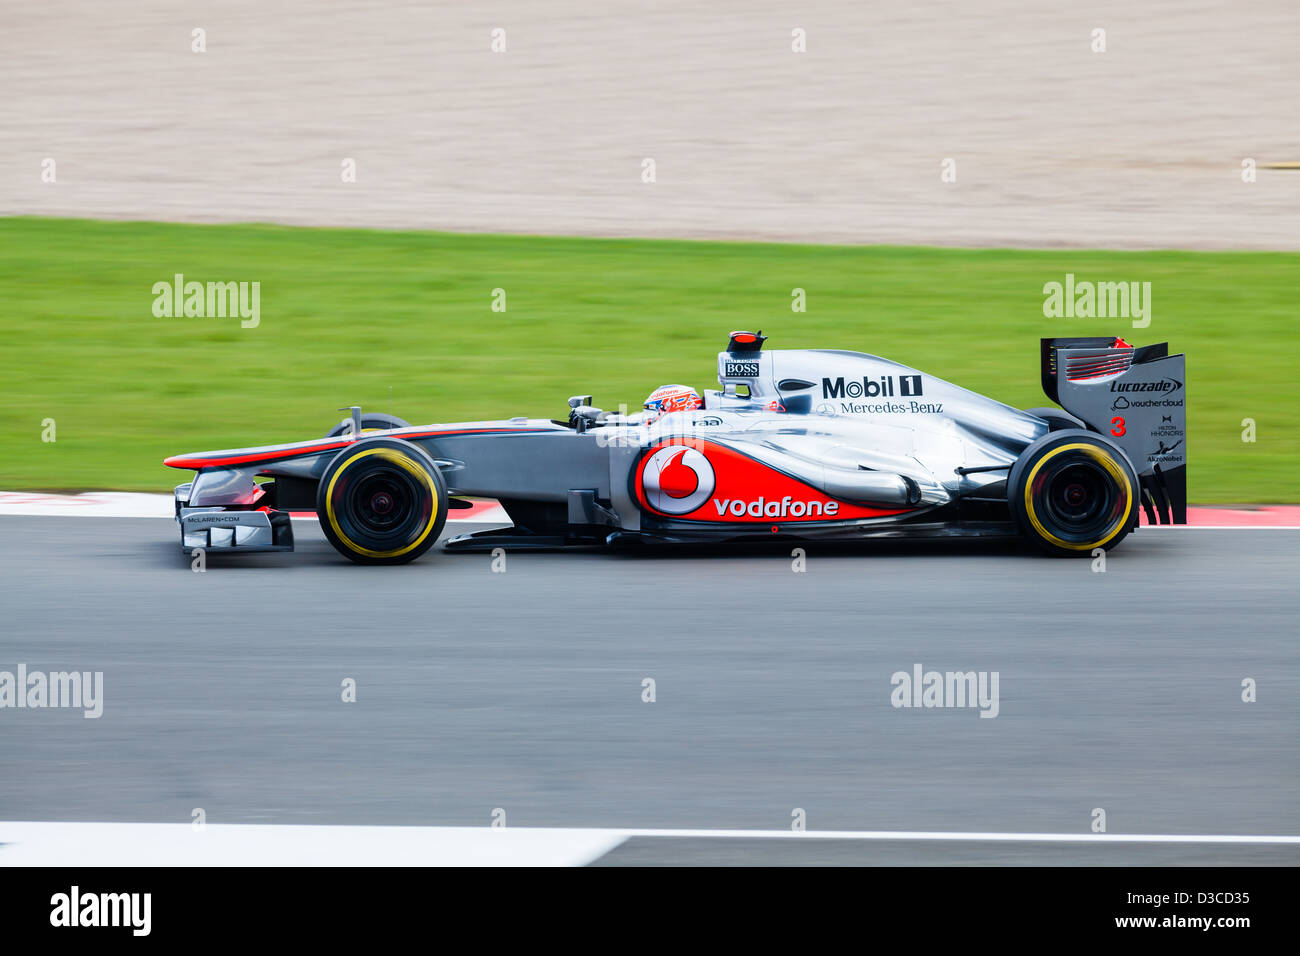 Jenson Button at Club Corner, Silverstone 2012 - Stock Image